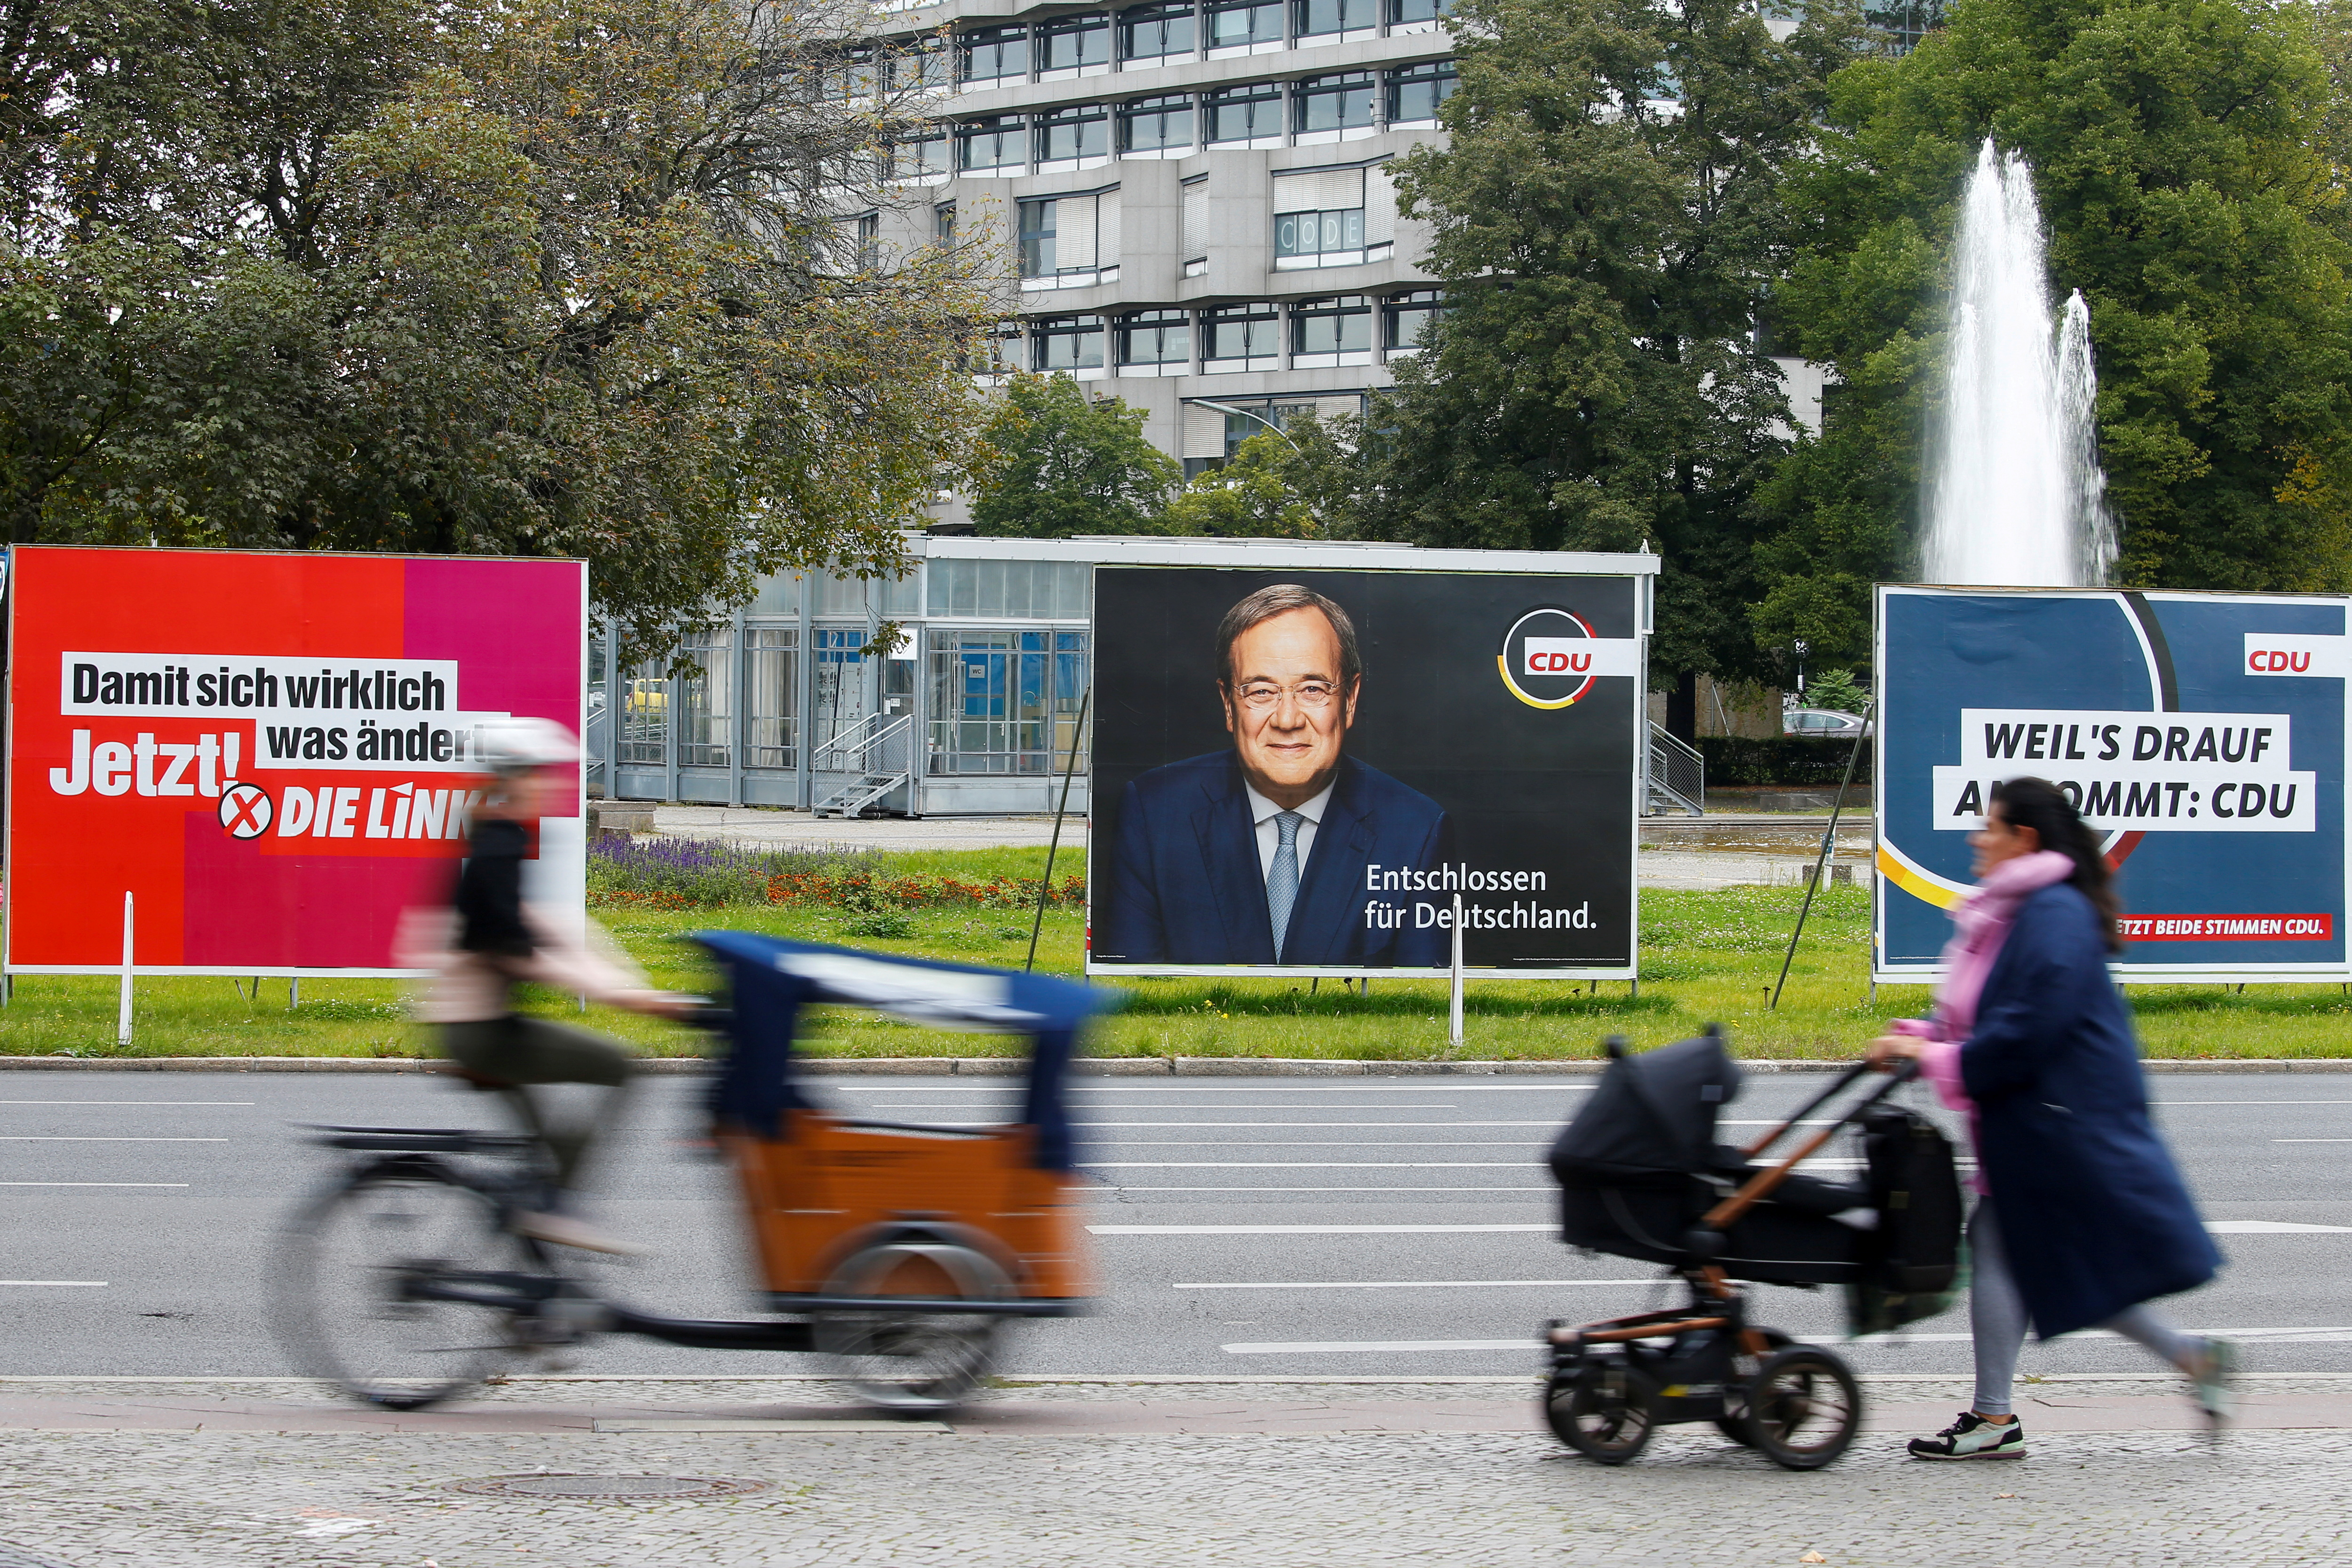 People pass by election campaign billboards featuring Christian Democratic Union (CDU) party leader and top candidate for chancellor, Armin Laschet, and the left wing party Die Linke, in Berlin, Germany, September 20, 2021. REUTERS/Michele Tantussi/